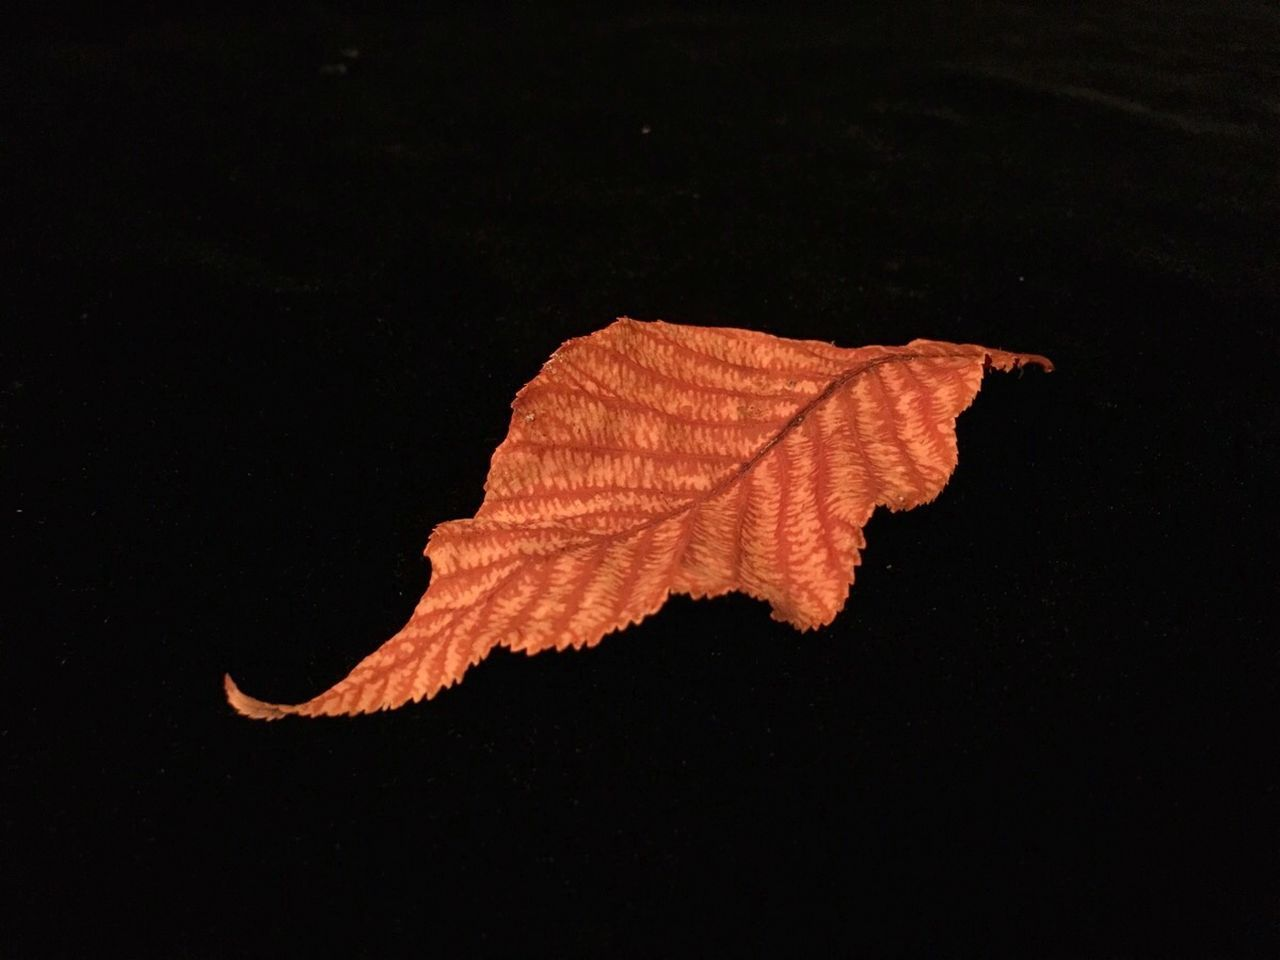 IPhoneography Leaf Golden Leaf Single Leaf Minimalist Buckeye Leaf Black Backround Contemplative